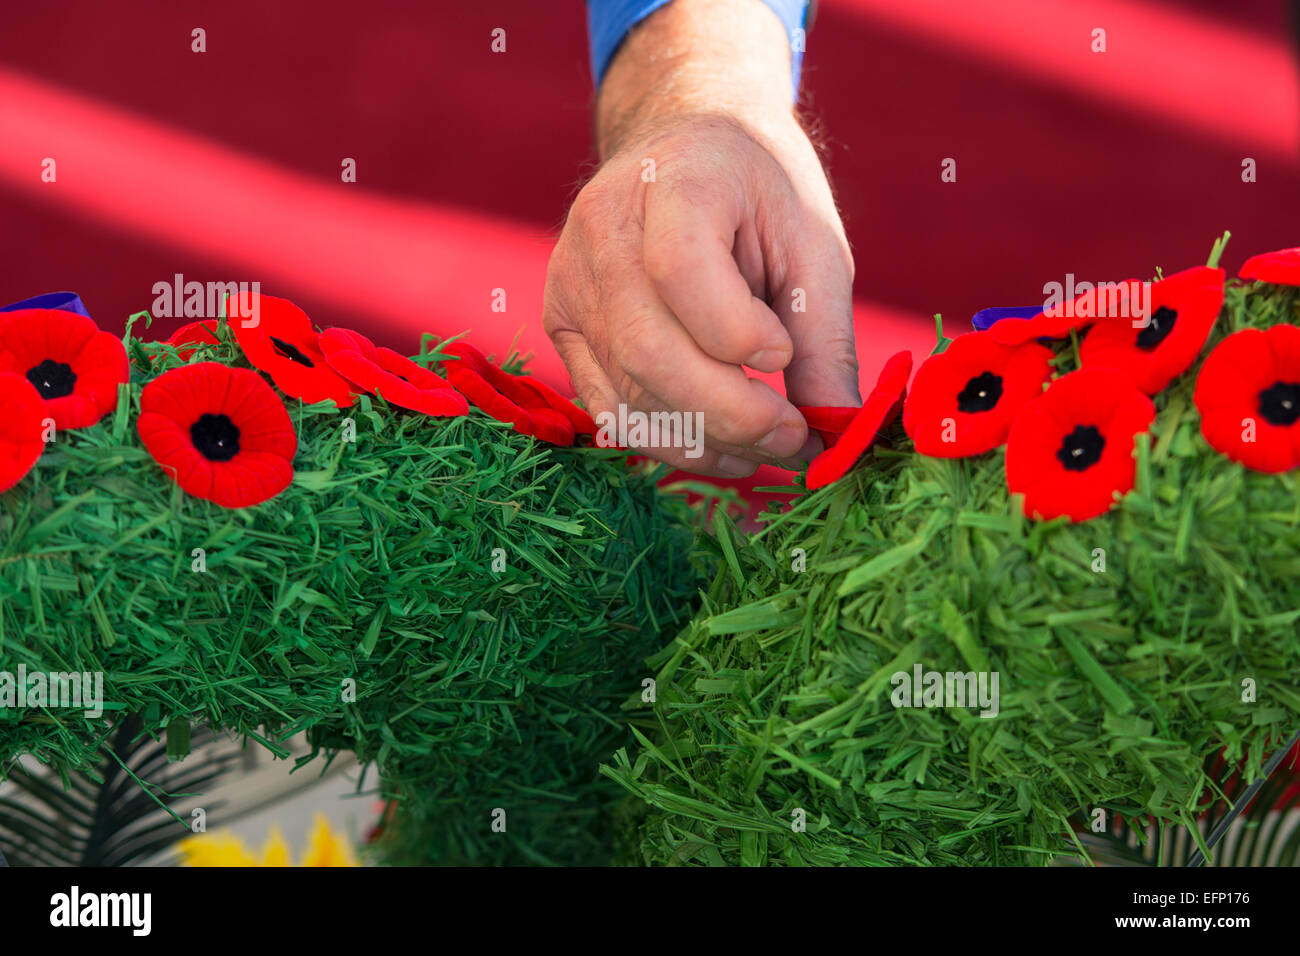 Remembrance Day Poppies, Hand Placing Poppy on Wreath - Stock Image